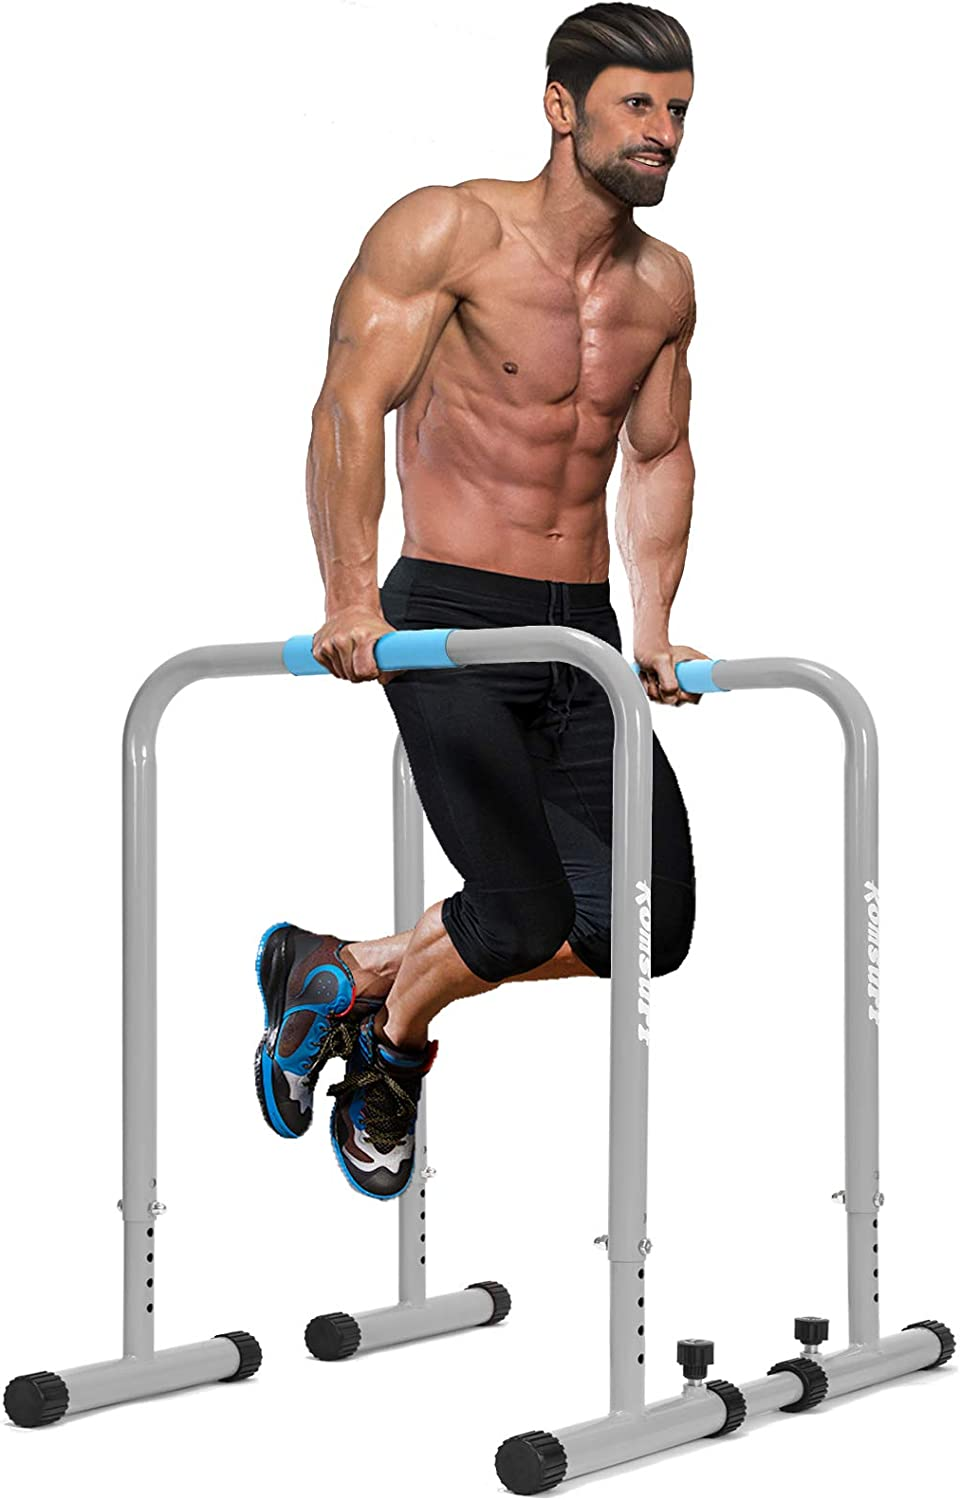 KOMSURF Dip Bar Training Station – Dip Station Upgraded Heavy Duty Dip Bars with Adjustable Safety Connector, Strength Training Parallel Bars for Home Exercise,550Lbs Weight Capacity